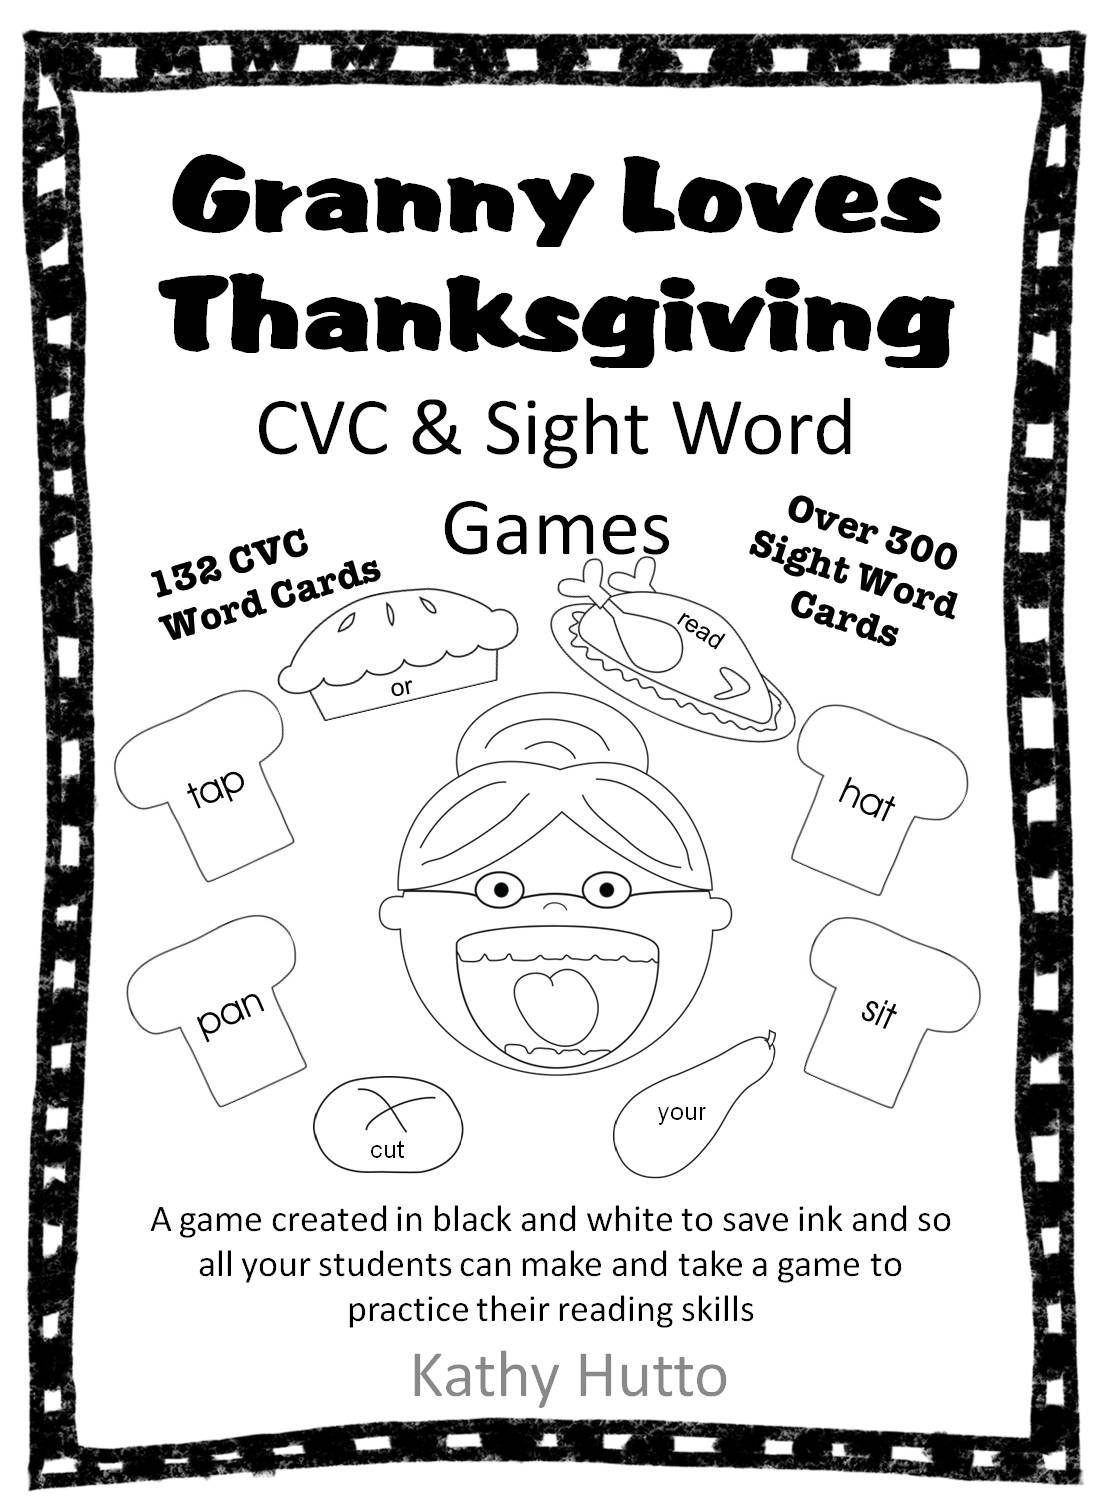 Granny Loves Thanksgiving Free Cvc And Sight Word Game